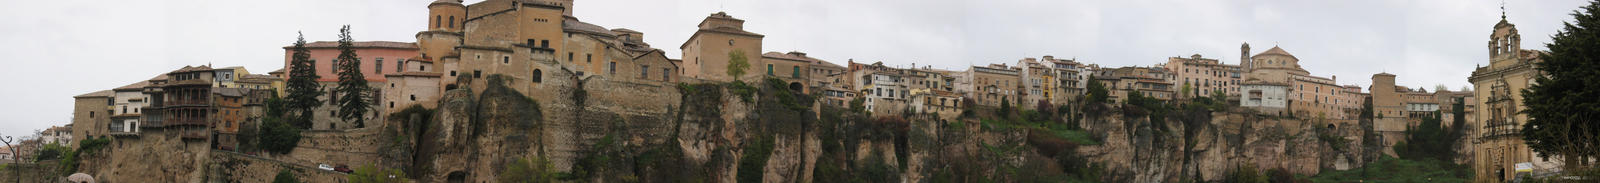 Cuenca panoramica by raspete